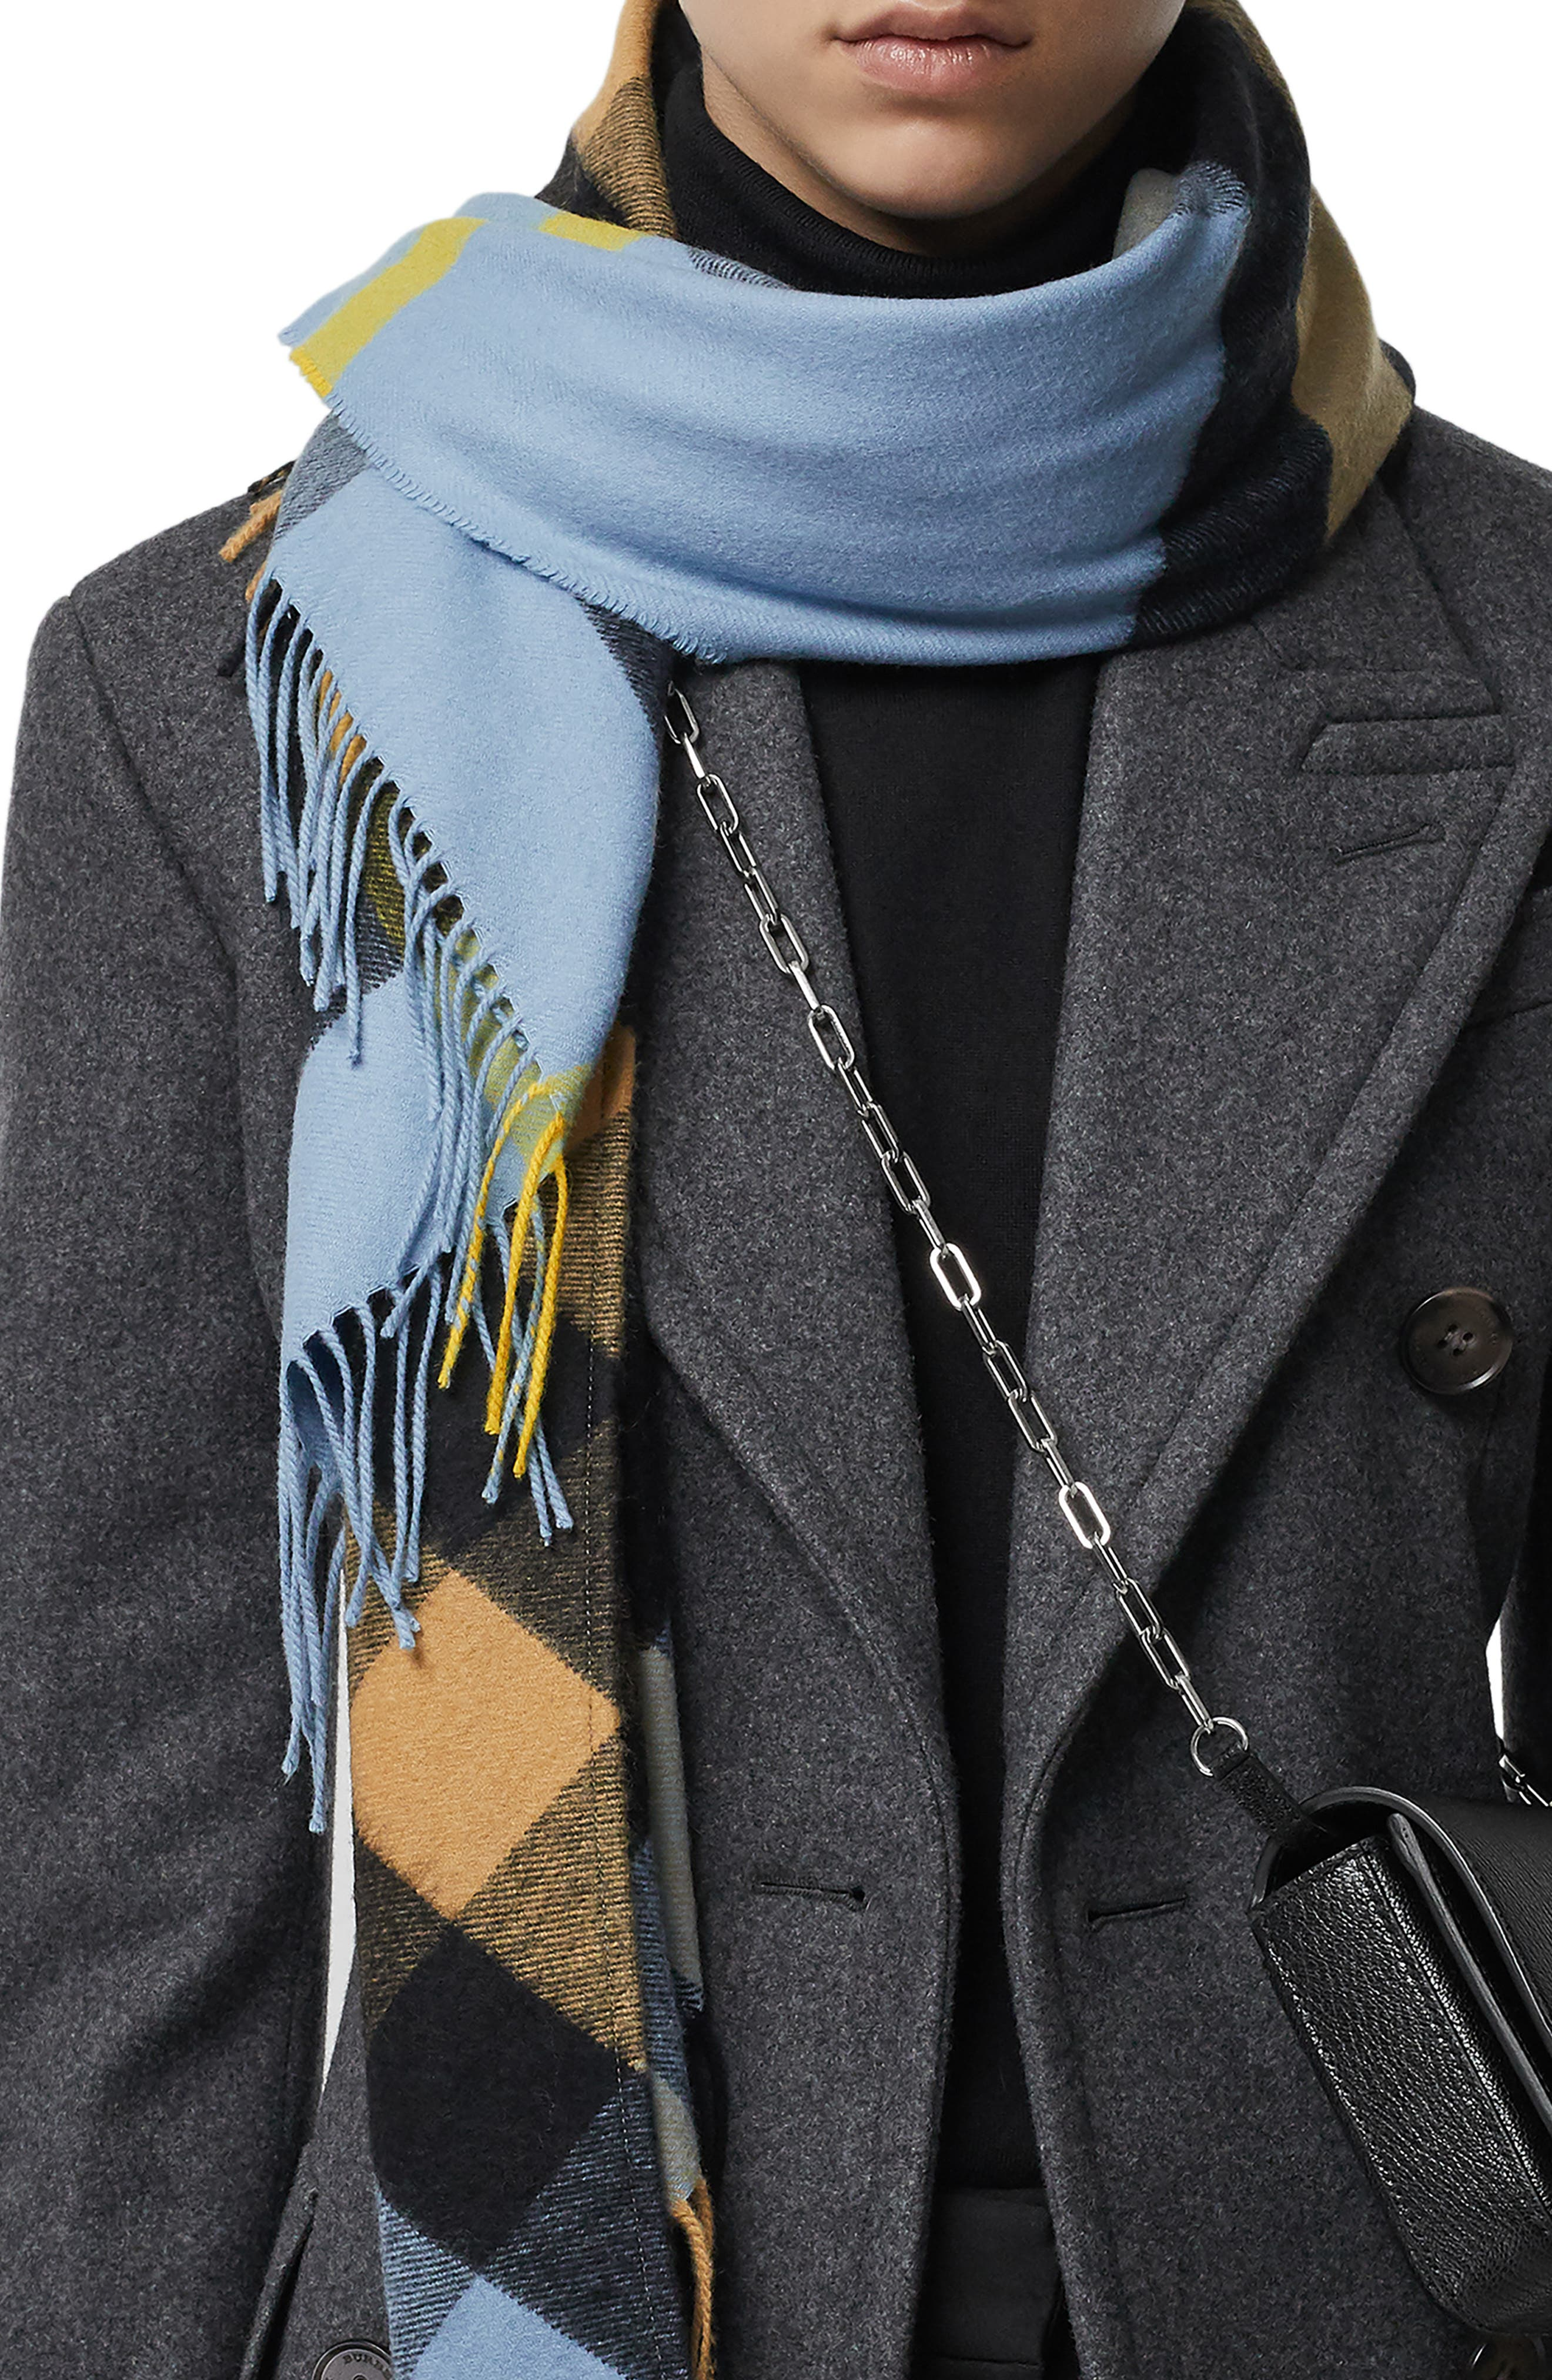 BURBERRY,                             Mega Check Cashmere Scarf,                             Alternate thumbnail 5, color,                             PALE CARBON BLUE